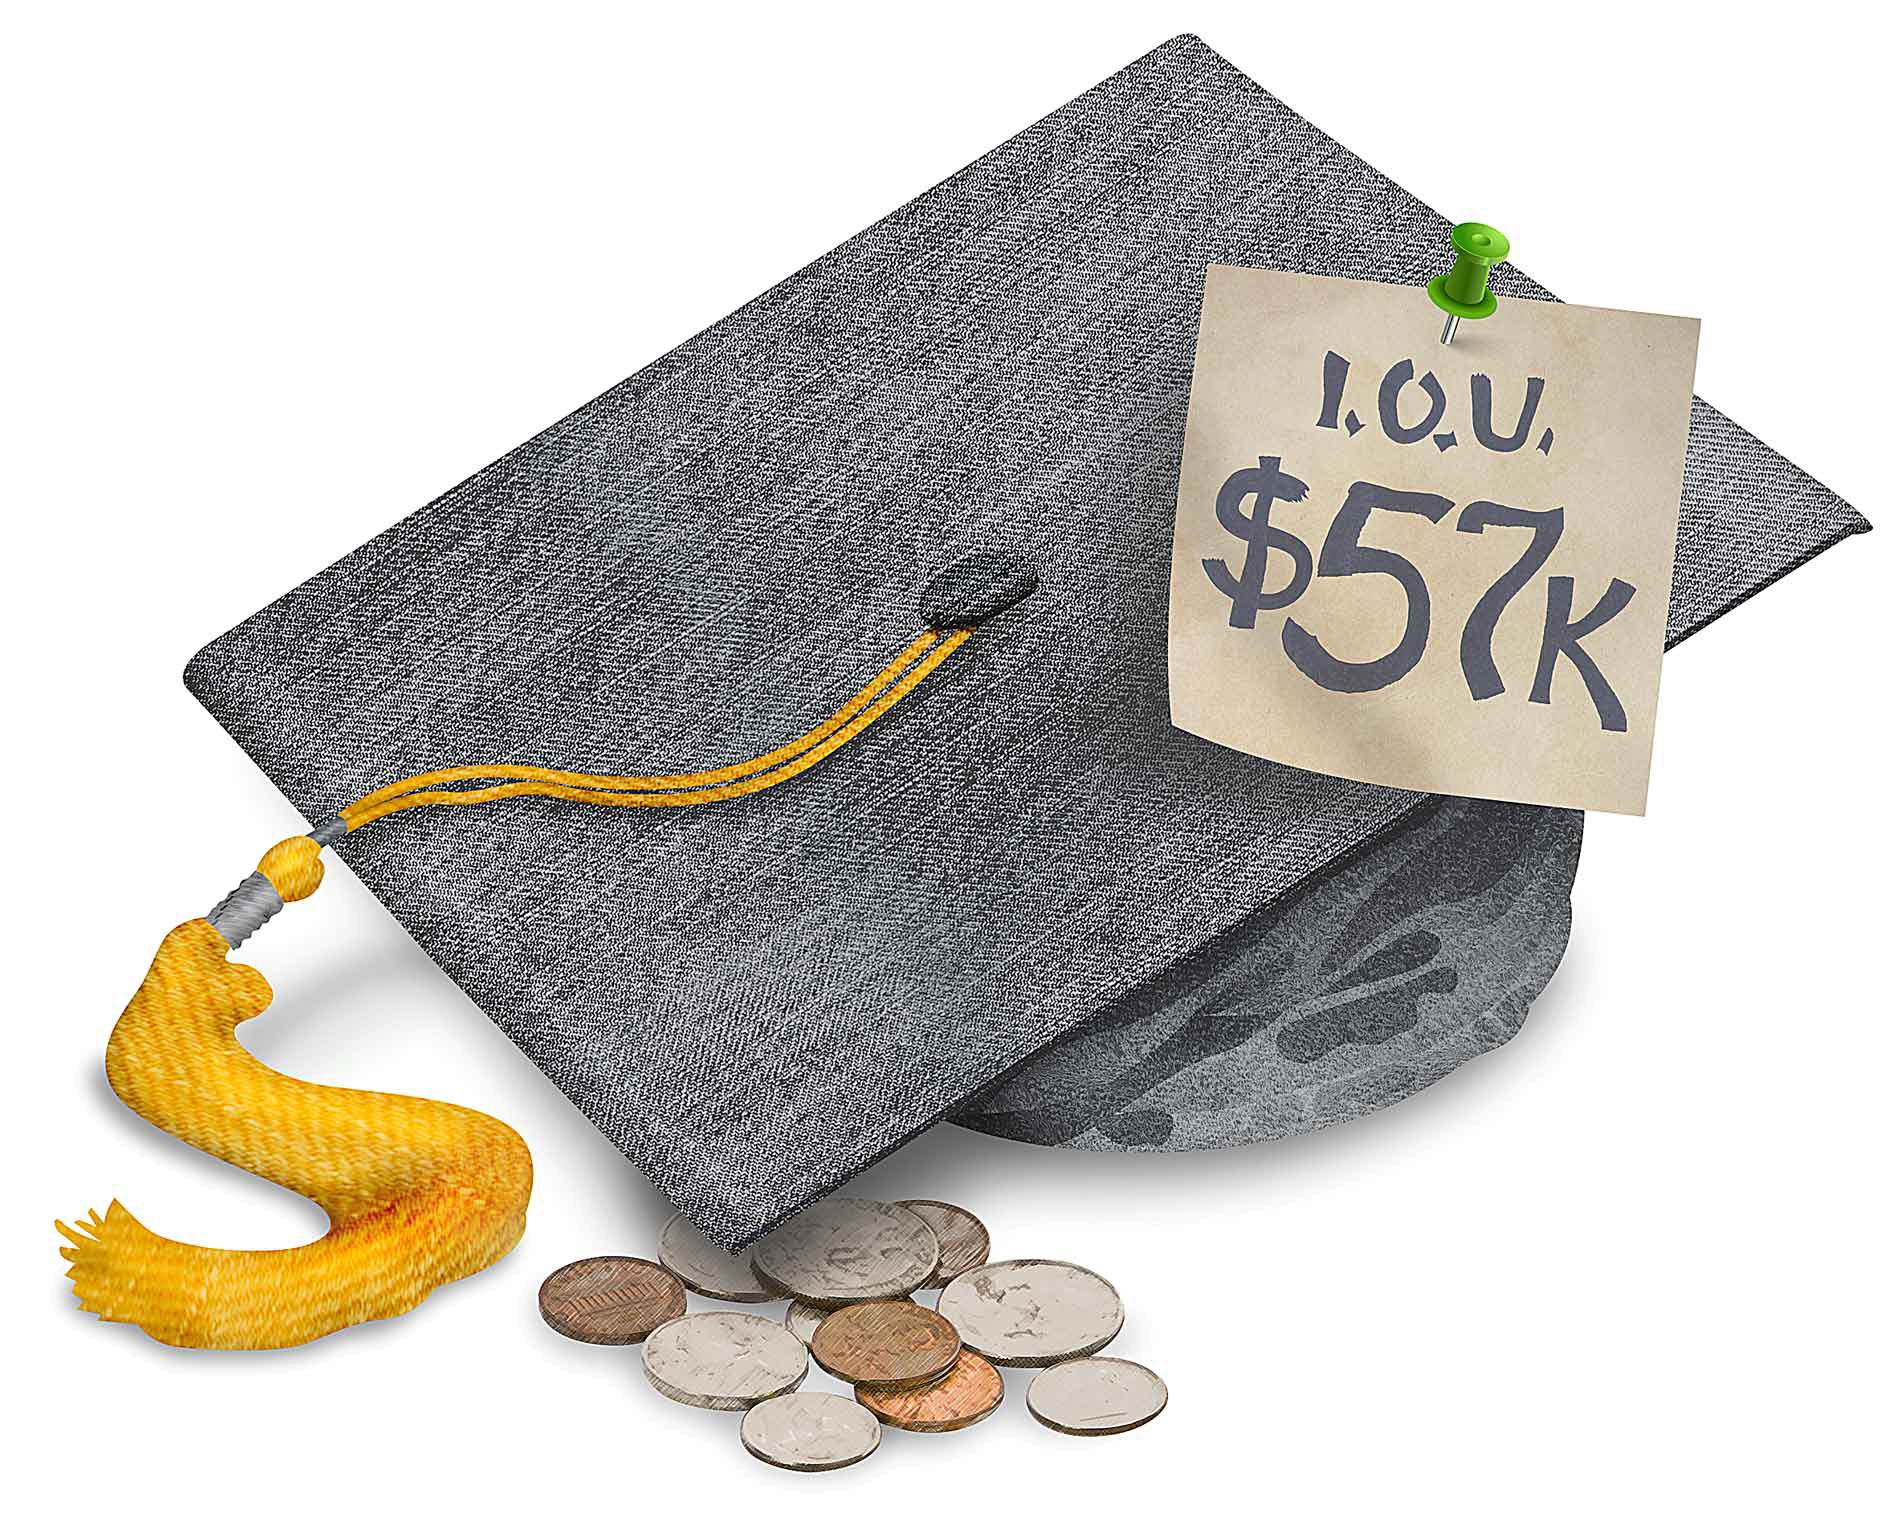 HADLEY HEATH MANNING: Teaching the wrong lesson about student debt